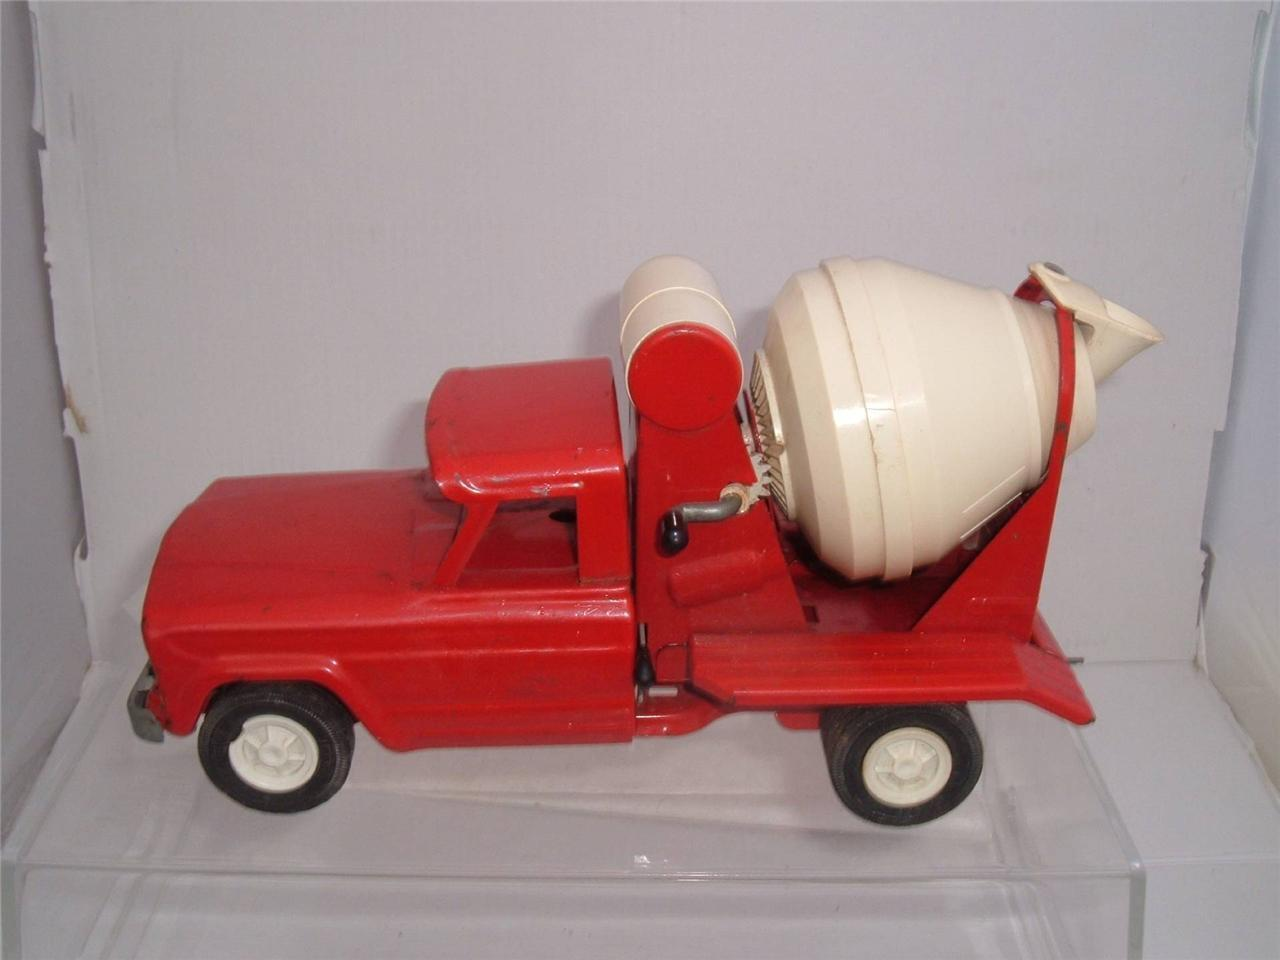 TONKA TOYS CEHommesT MIXER rouge  IN USED VINTAGE SCROLL DOWN FOR THE PHOTOS  Style classique